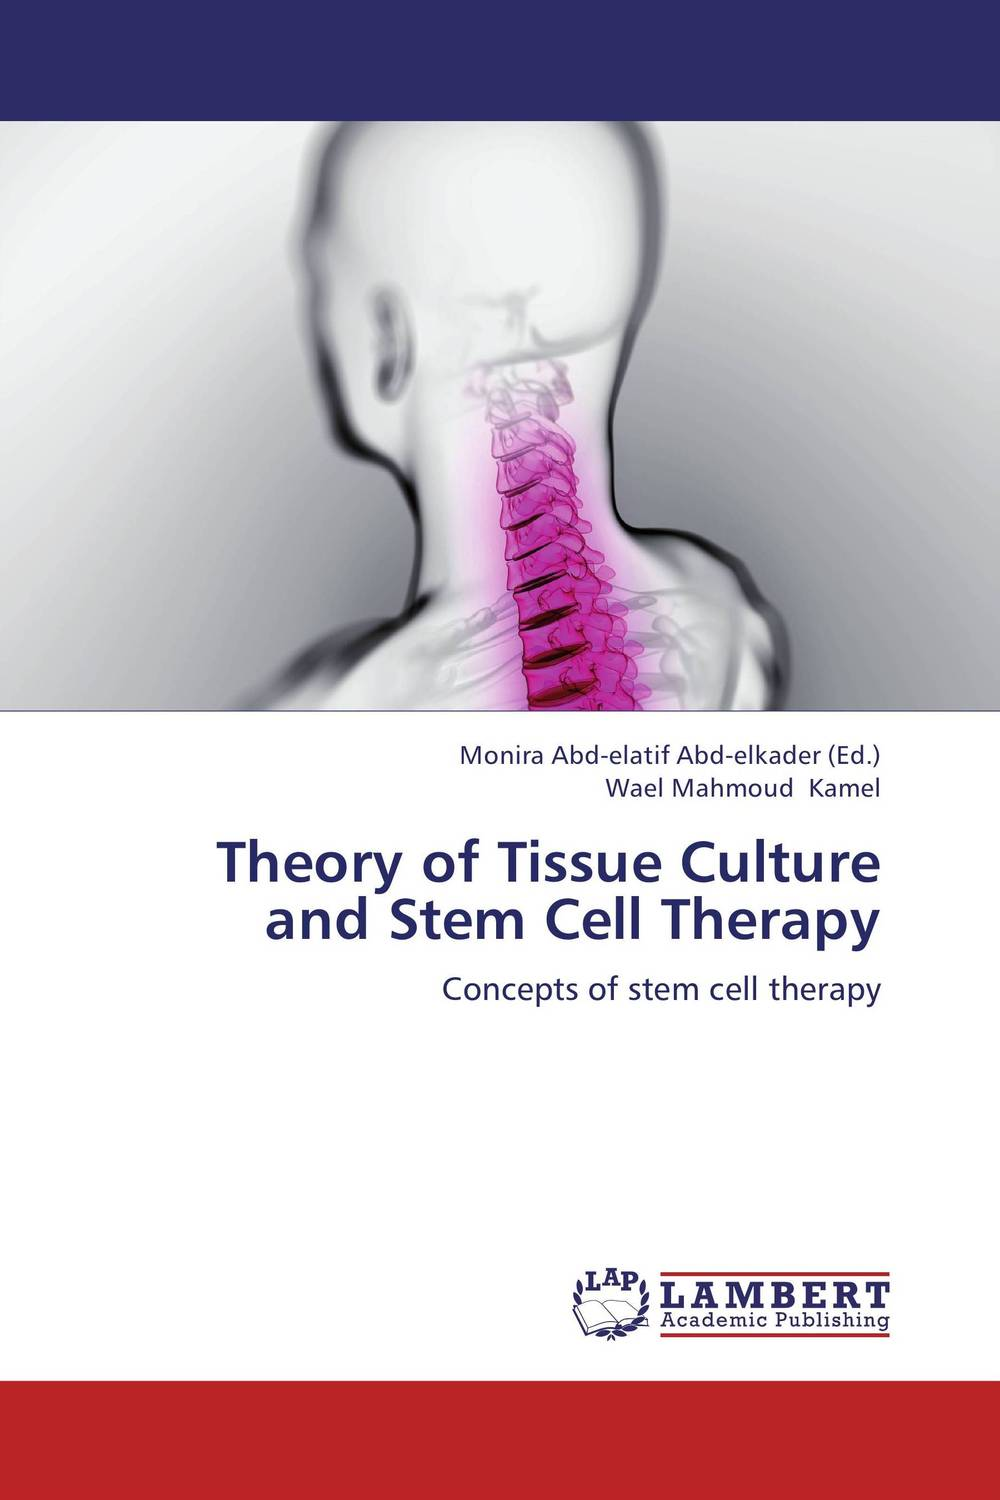 Theory of Tissue Culture and Stem Cell Therapy vrunda shah and vipul shah herbal therapy for liver disease